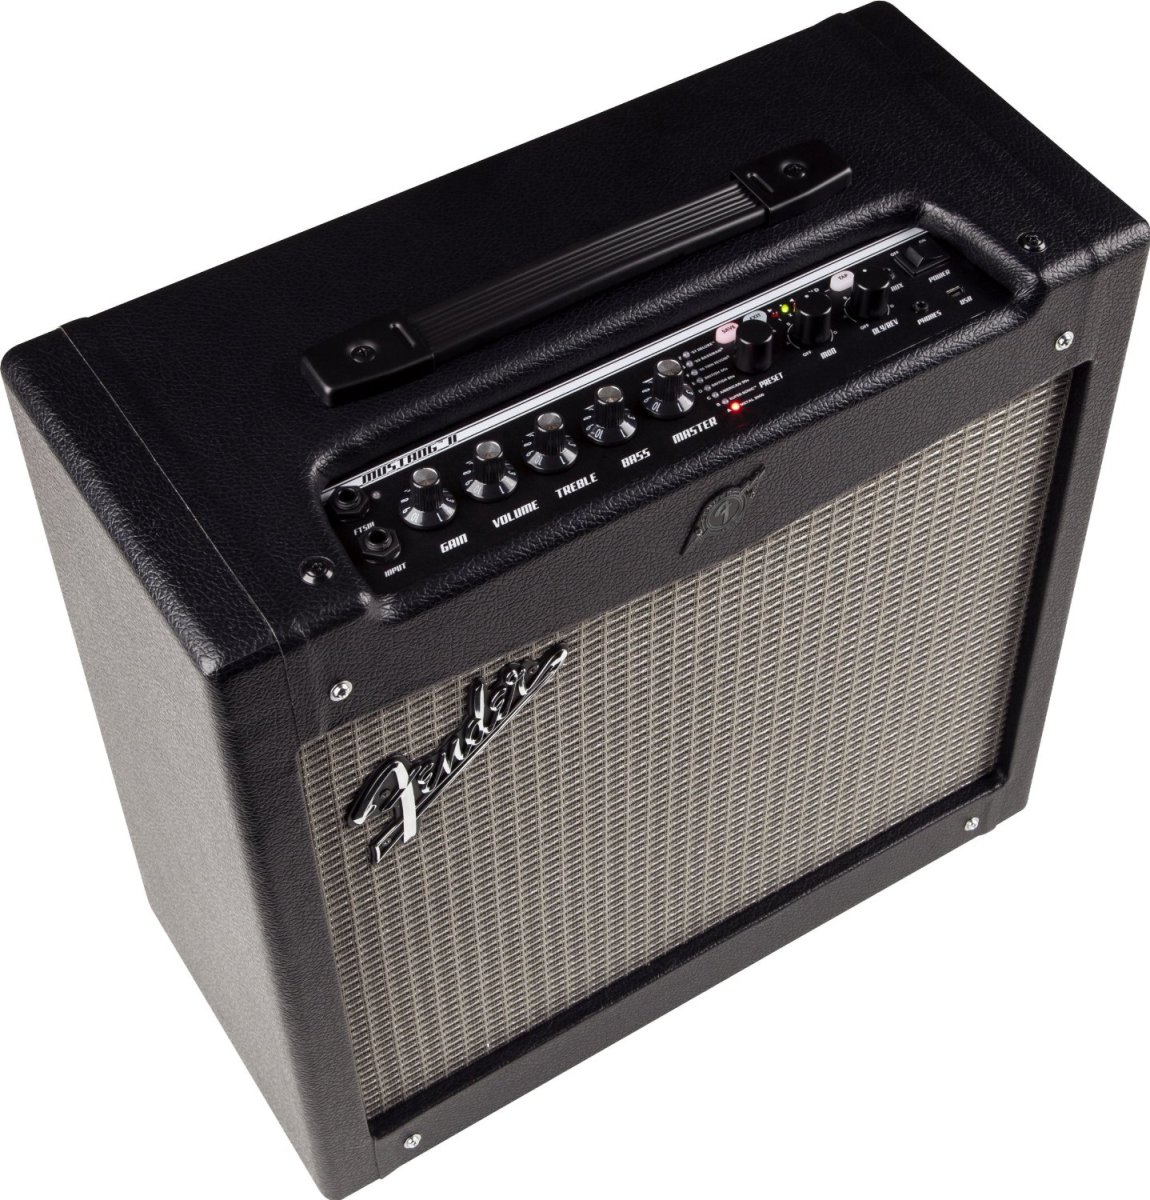 The Fender Mustang II is a great amp for a serious beginner for a low cost.